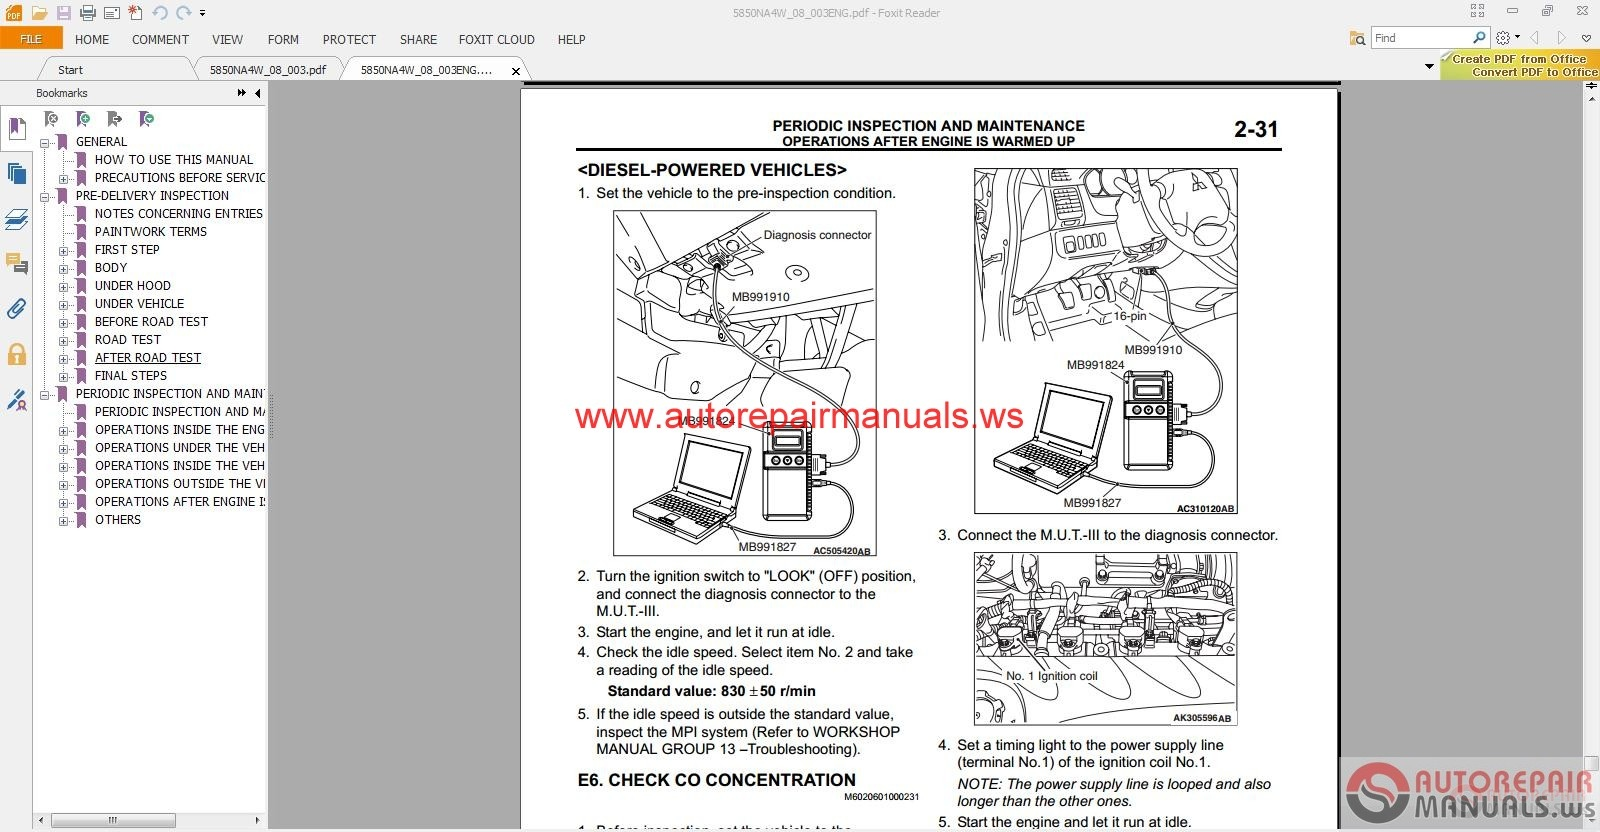 Free Download Wiring Diagram Mercedes W124 300e Repair Manual Guide Example 2018 2008 Mitsubishi Eclipse Vacuum Lines Benz W164 Interior